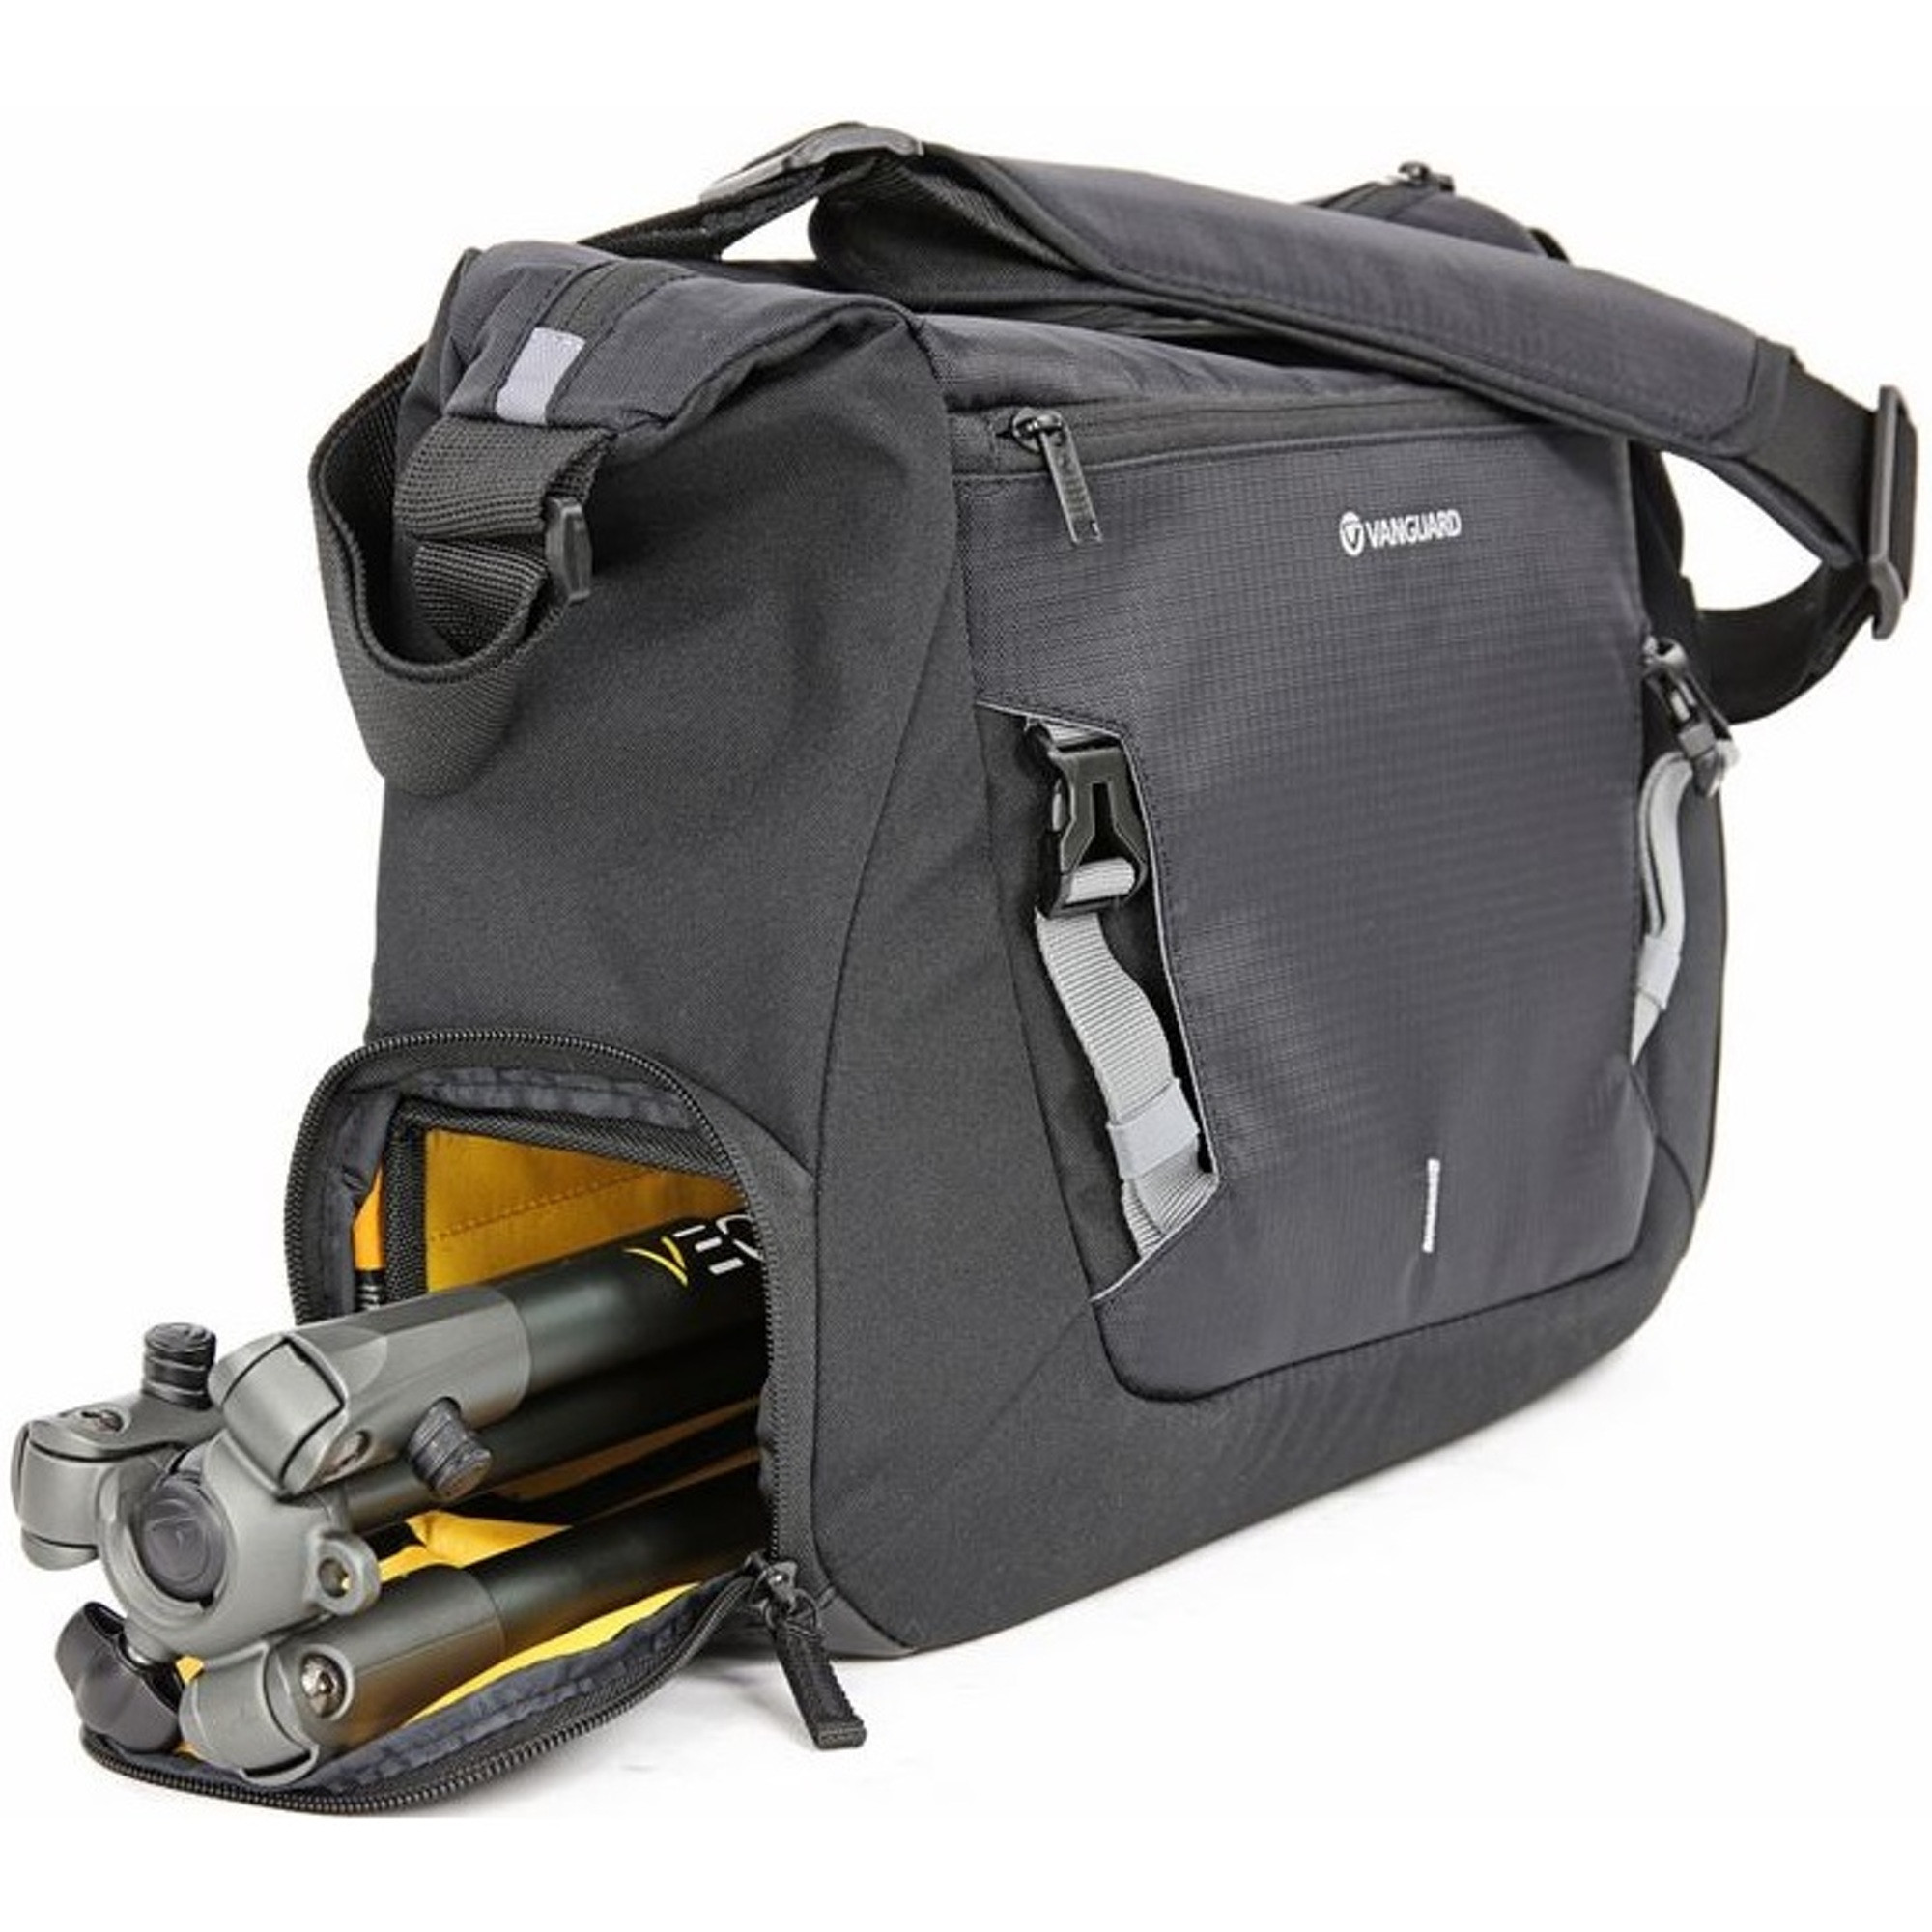 Transport Backpack Veo Discover 38 Gosselin Photo Vanguard 42 Share